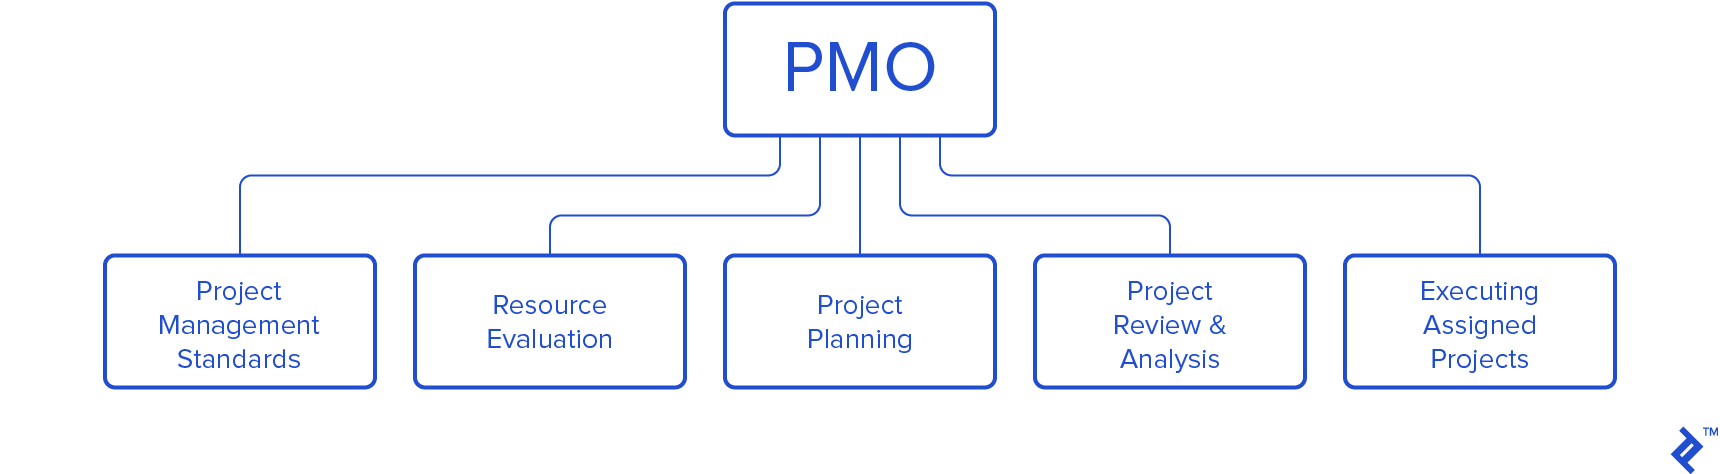 Chart of PMO responsibilities.